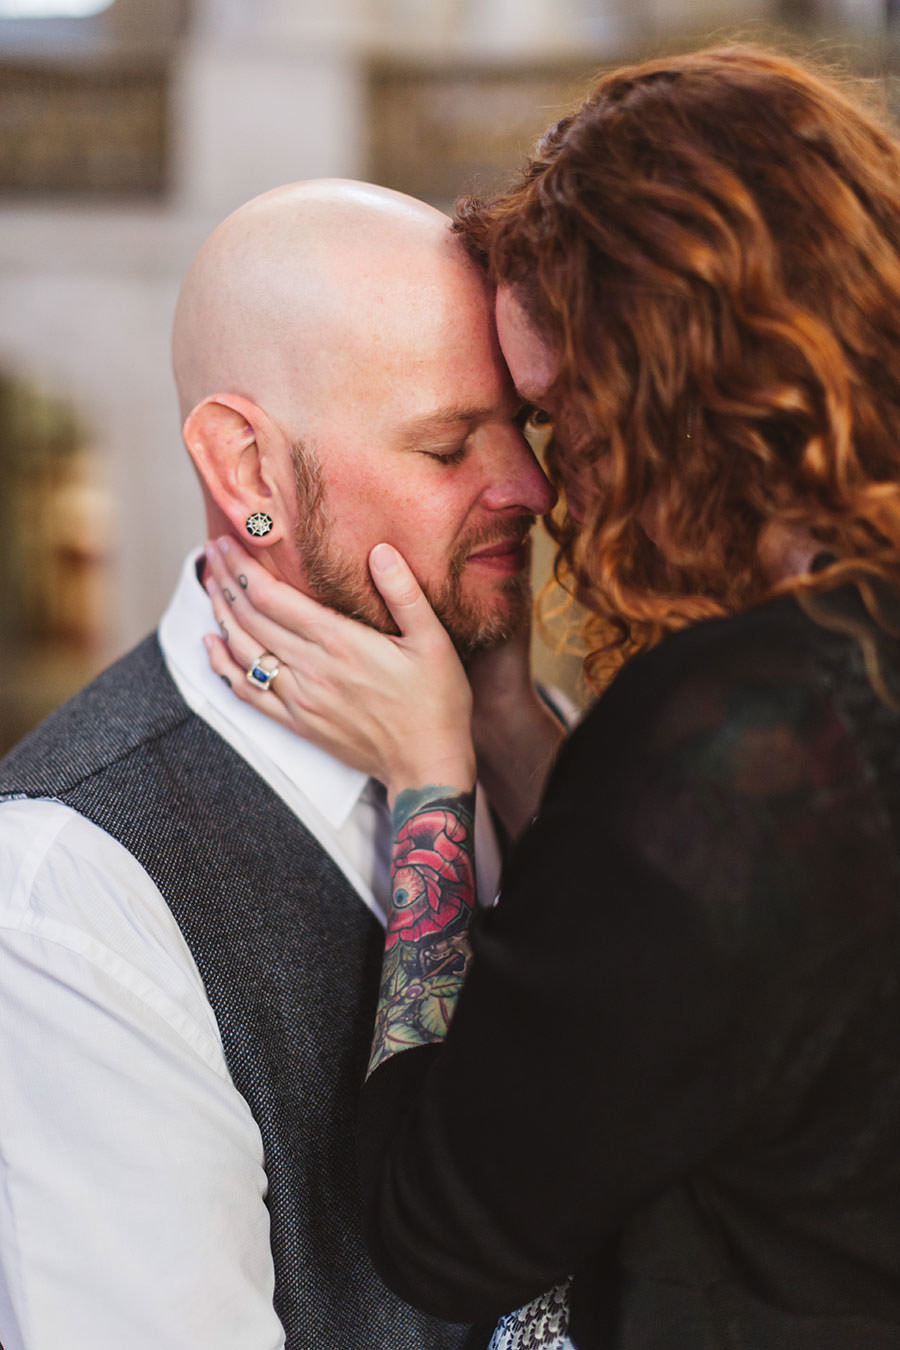 tattooed couple holding each other close on staircase